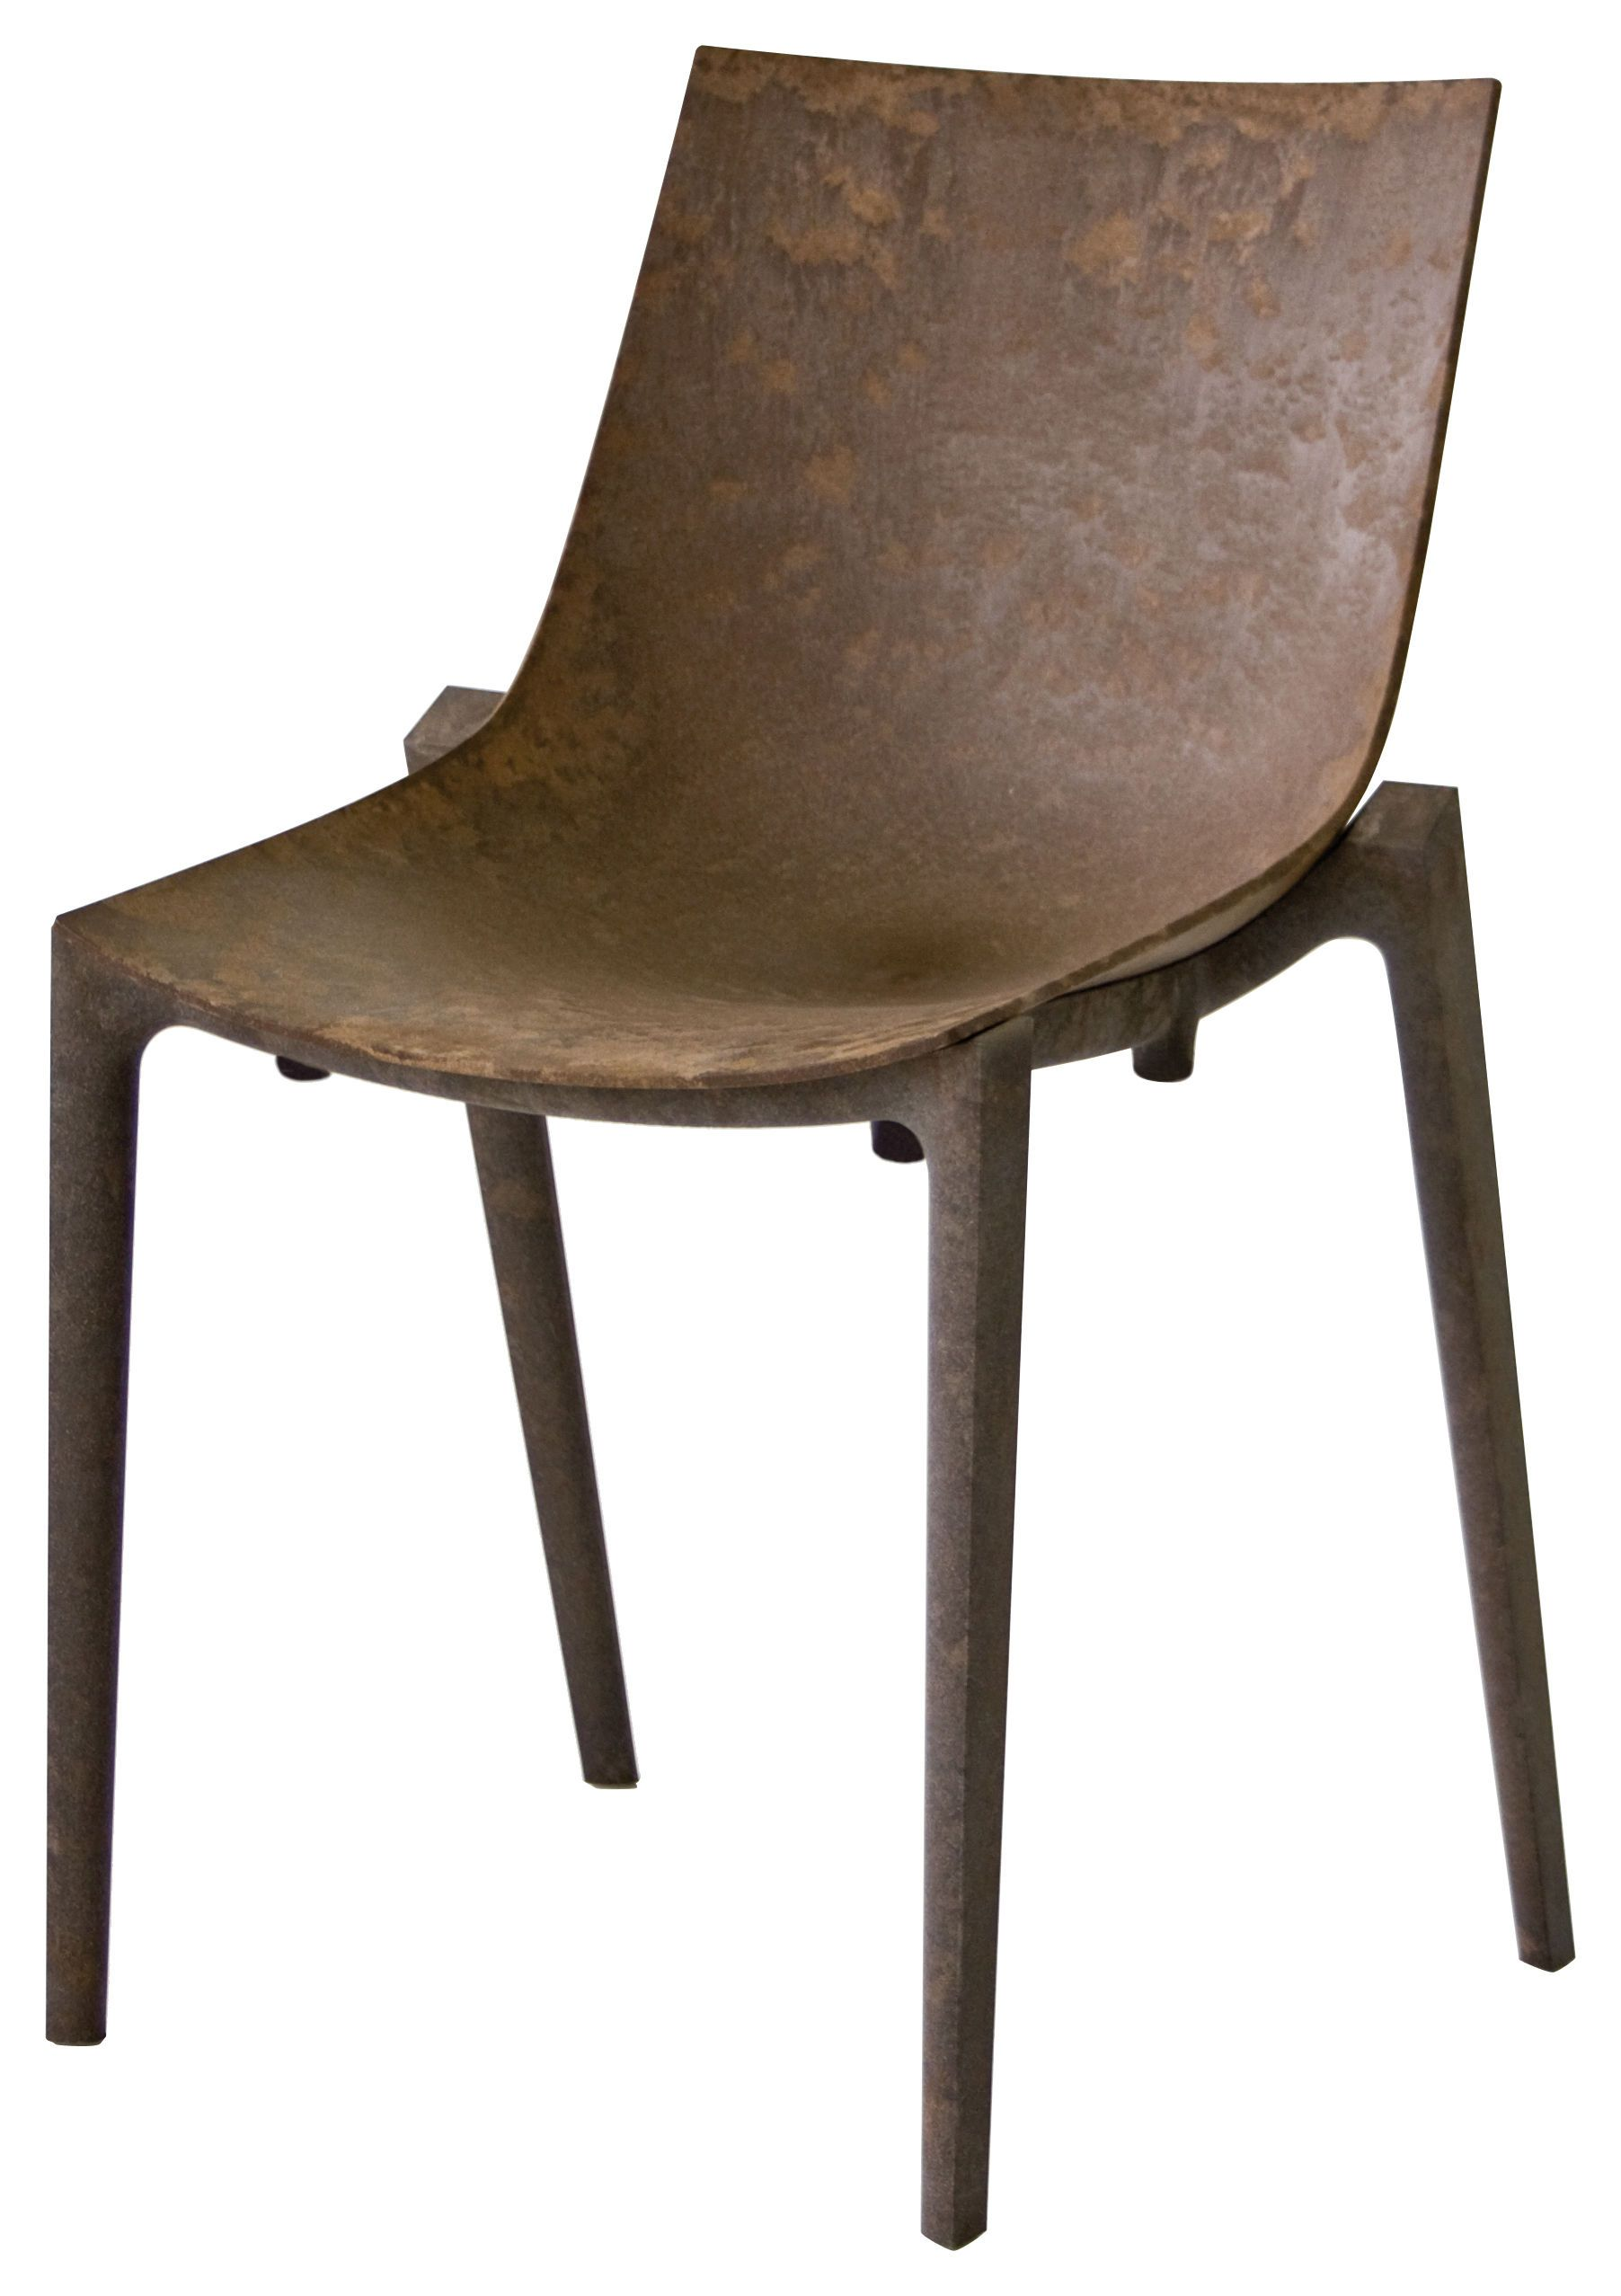 Zartan Chair I Designed By Philippe Starck For Magis Recycled Polypropylene Jute Fibre Or Wood Fiber Hemp Recyclable Biodegradable